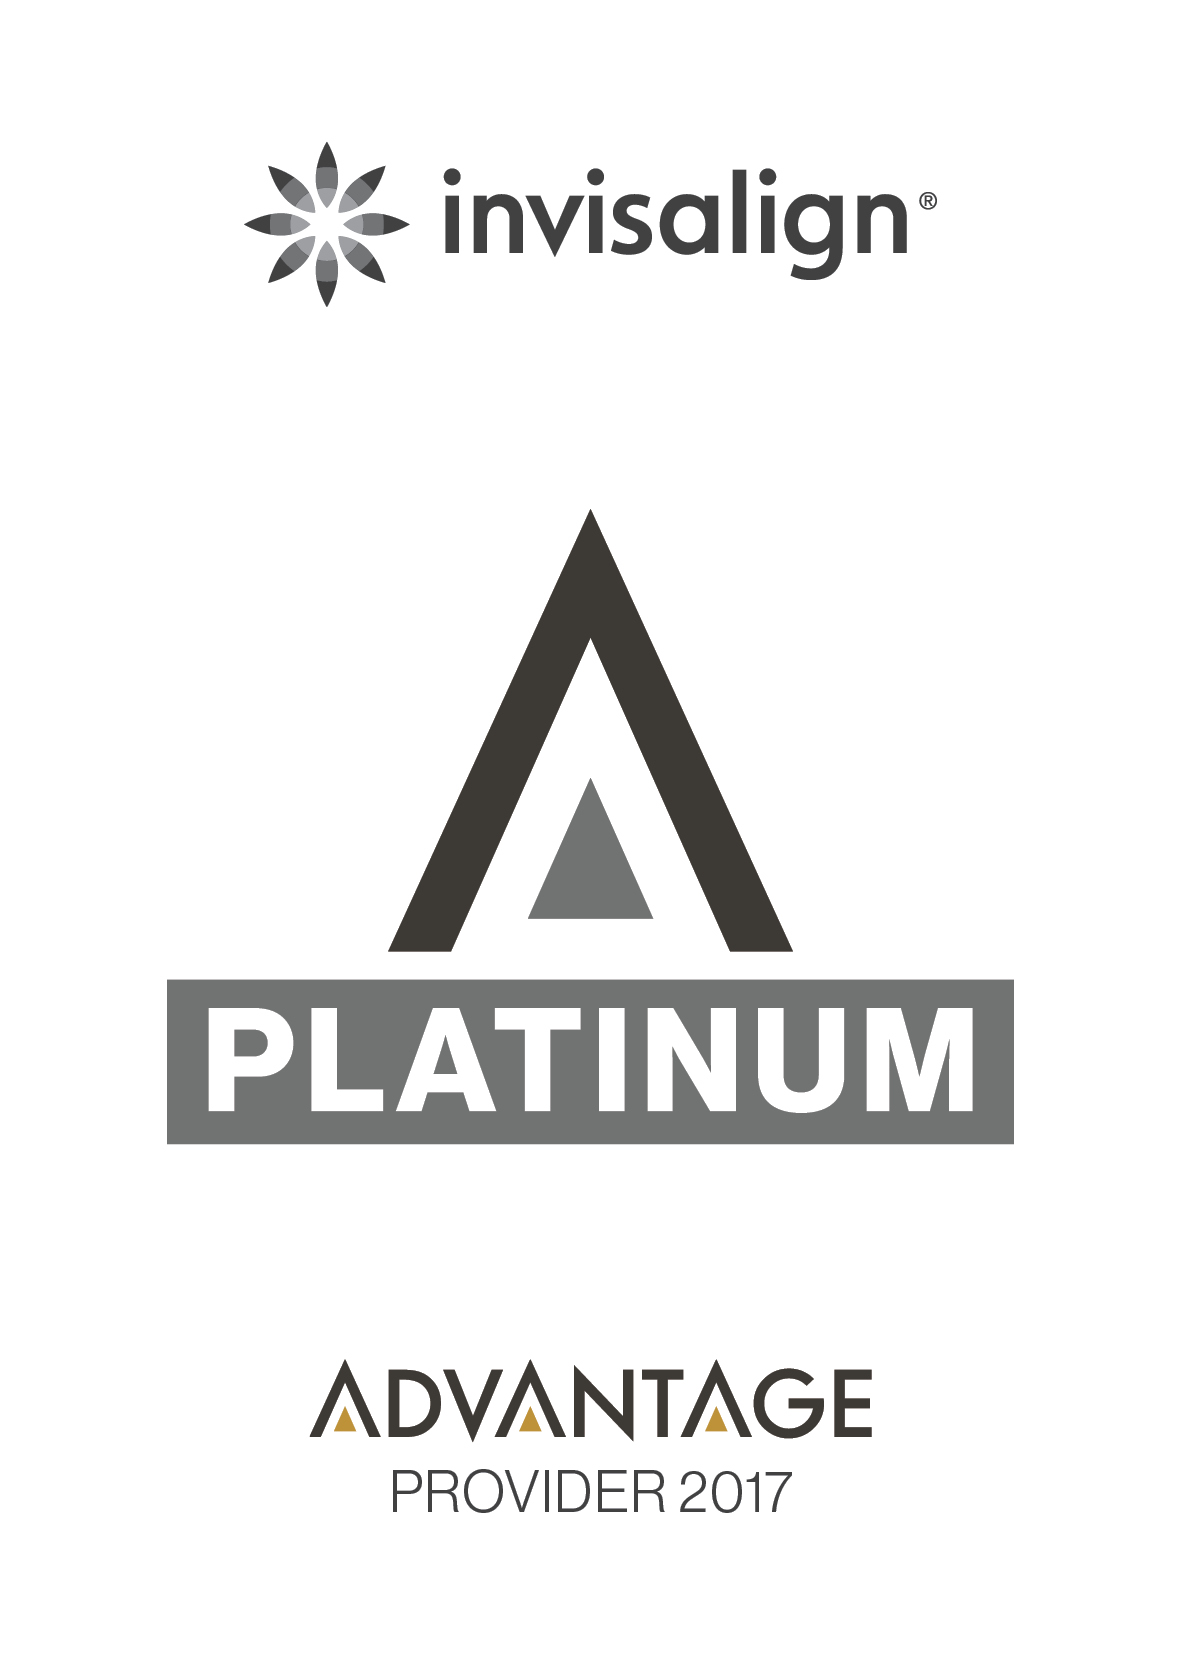 We are Invisalign Platinum Provider.